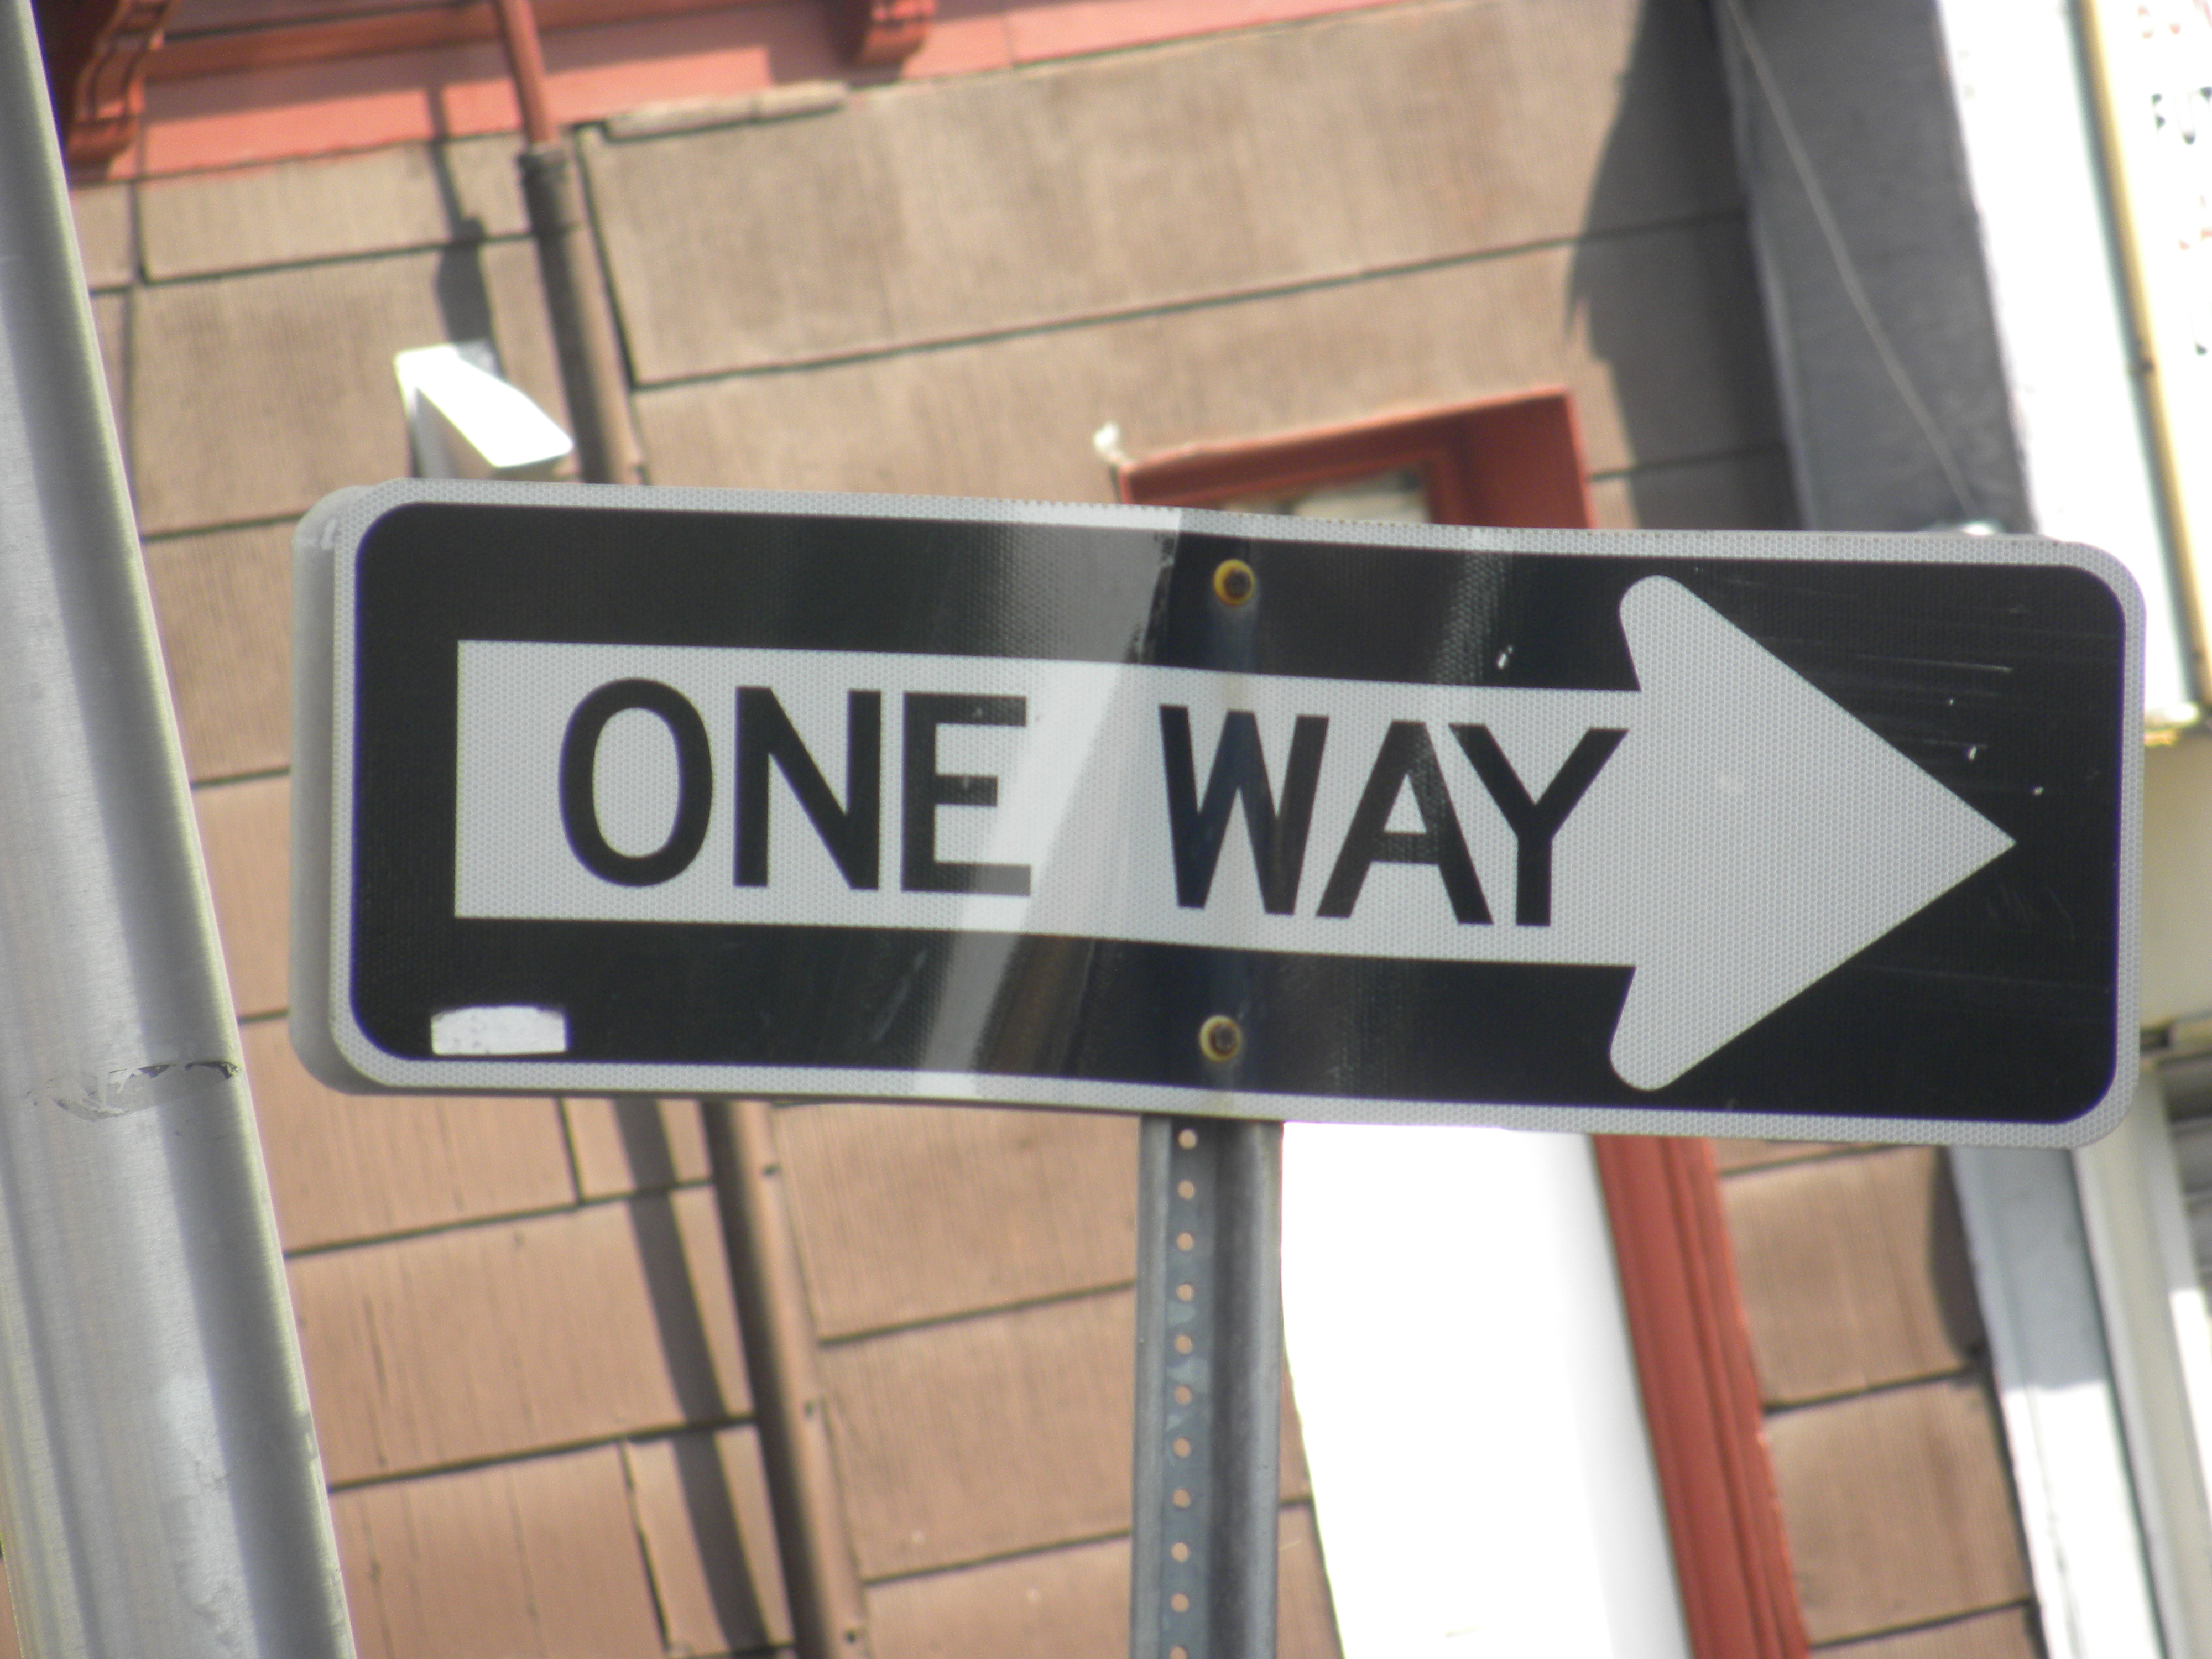 One way sign photo